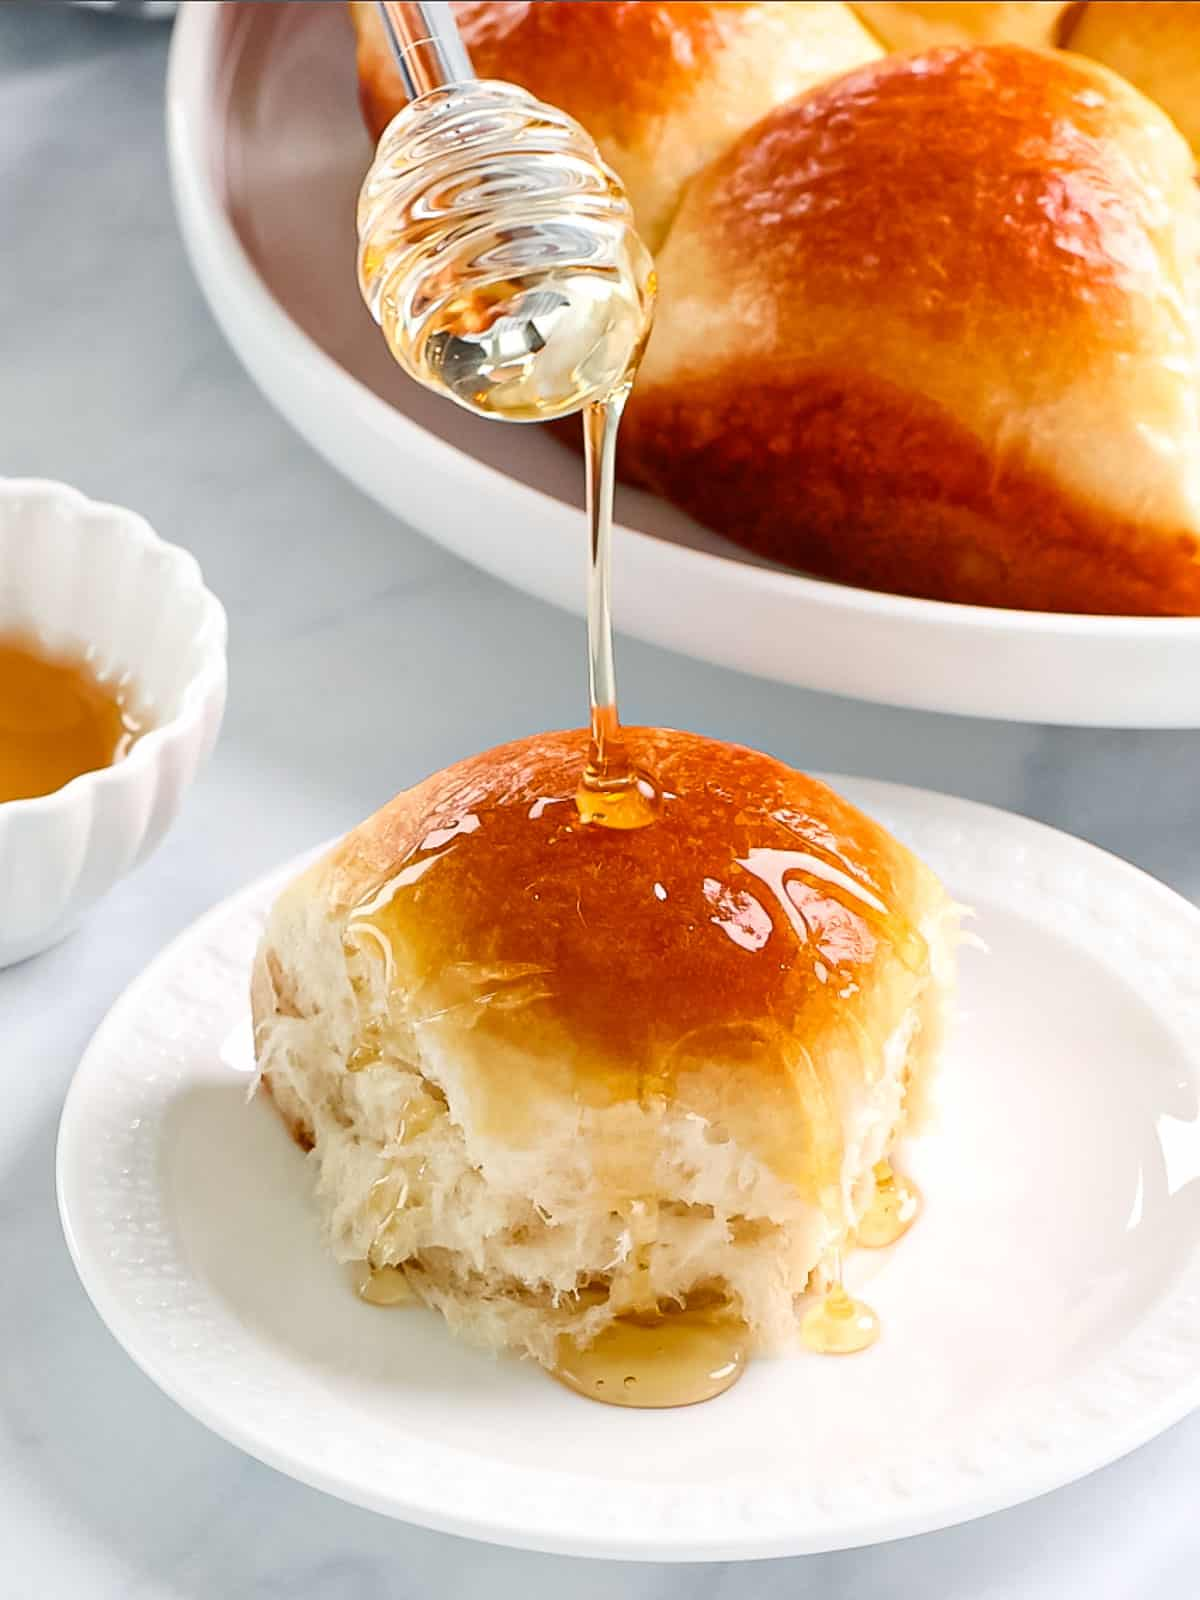 Buttery brioche rolls being drizzled with honey.